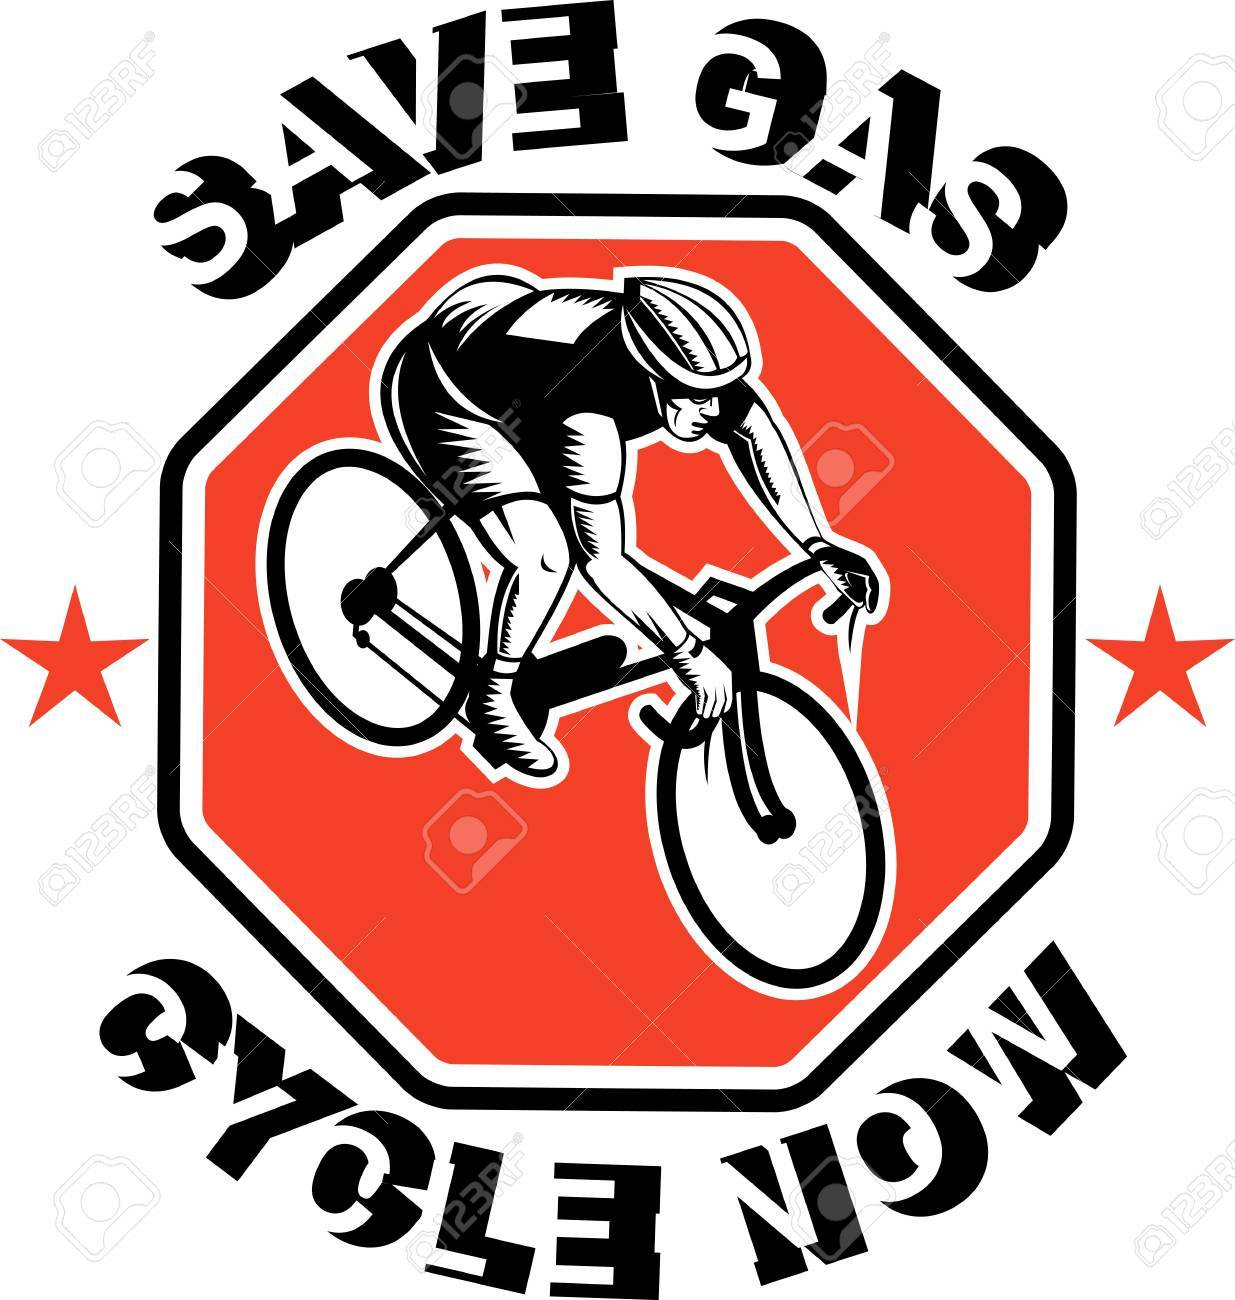 illustration of a Cyclist racing bike set inside octagon viewed from high angle done in retro woodcut style with text saves gas cycle now Stock Illustration - 7715572